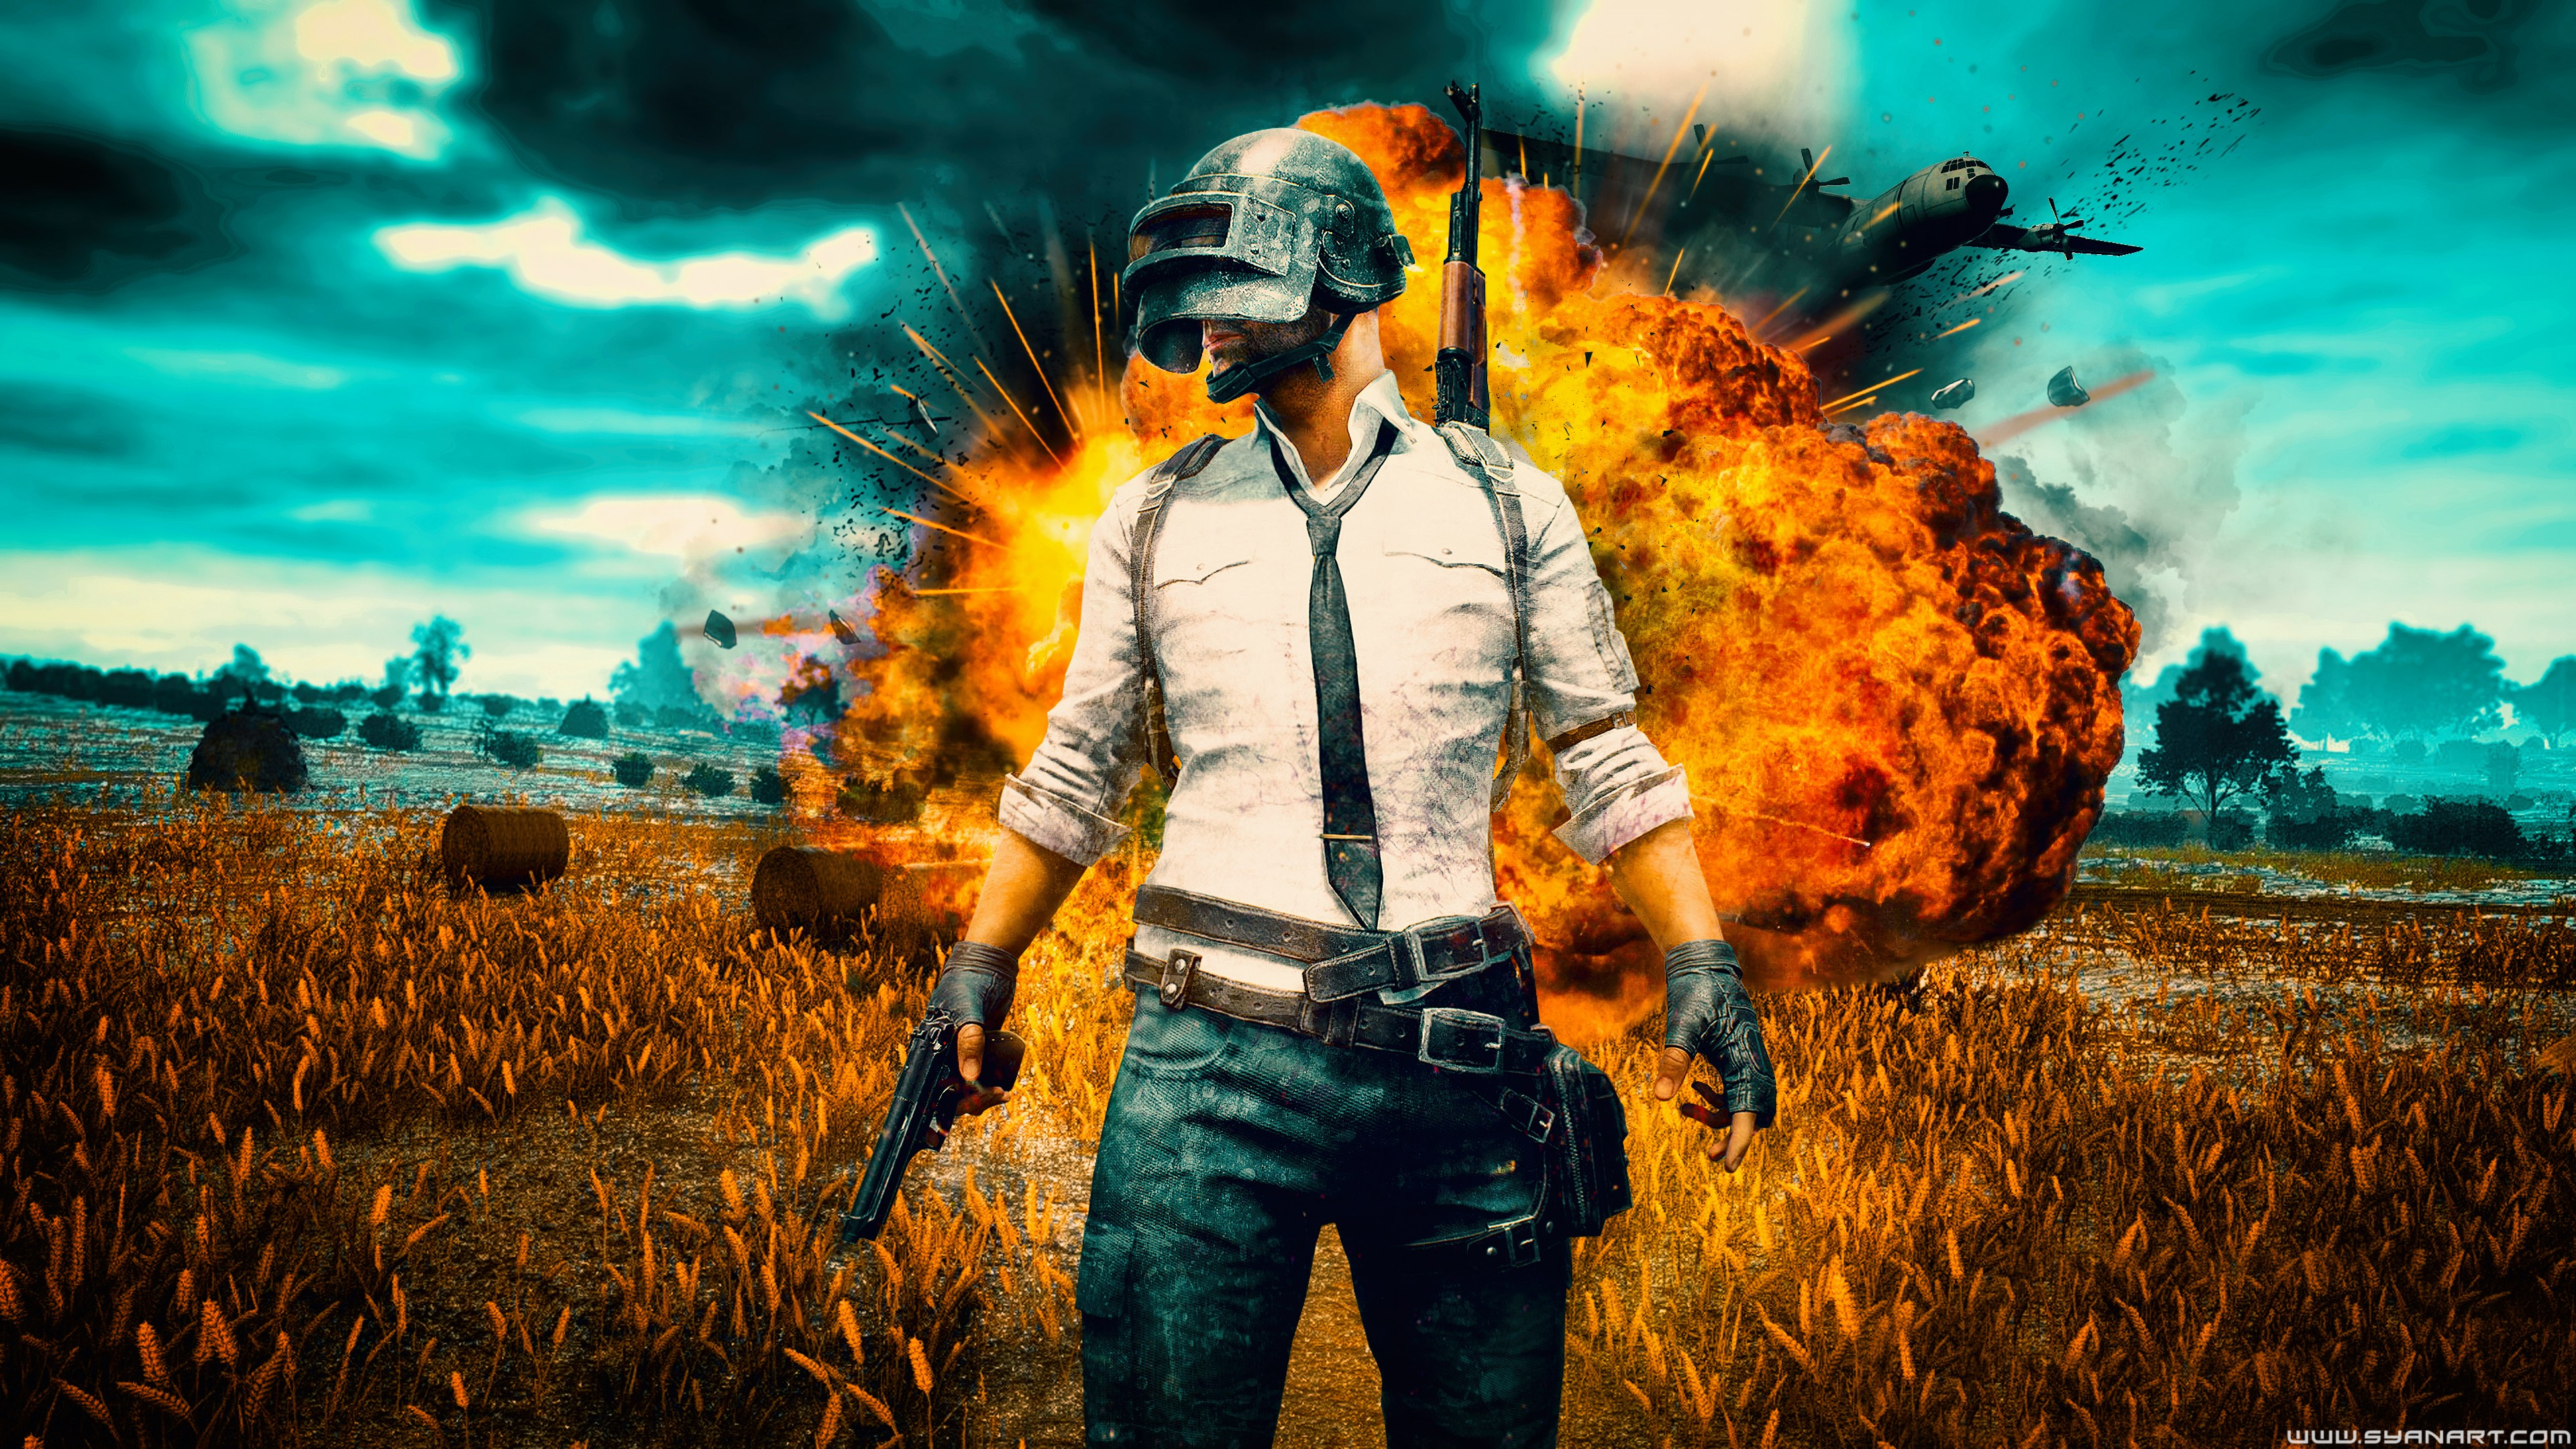 47 Pubg Mobile 2020 Wallpapers On Wallpapersafari